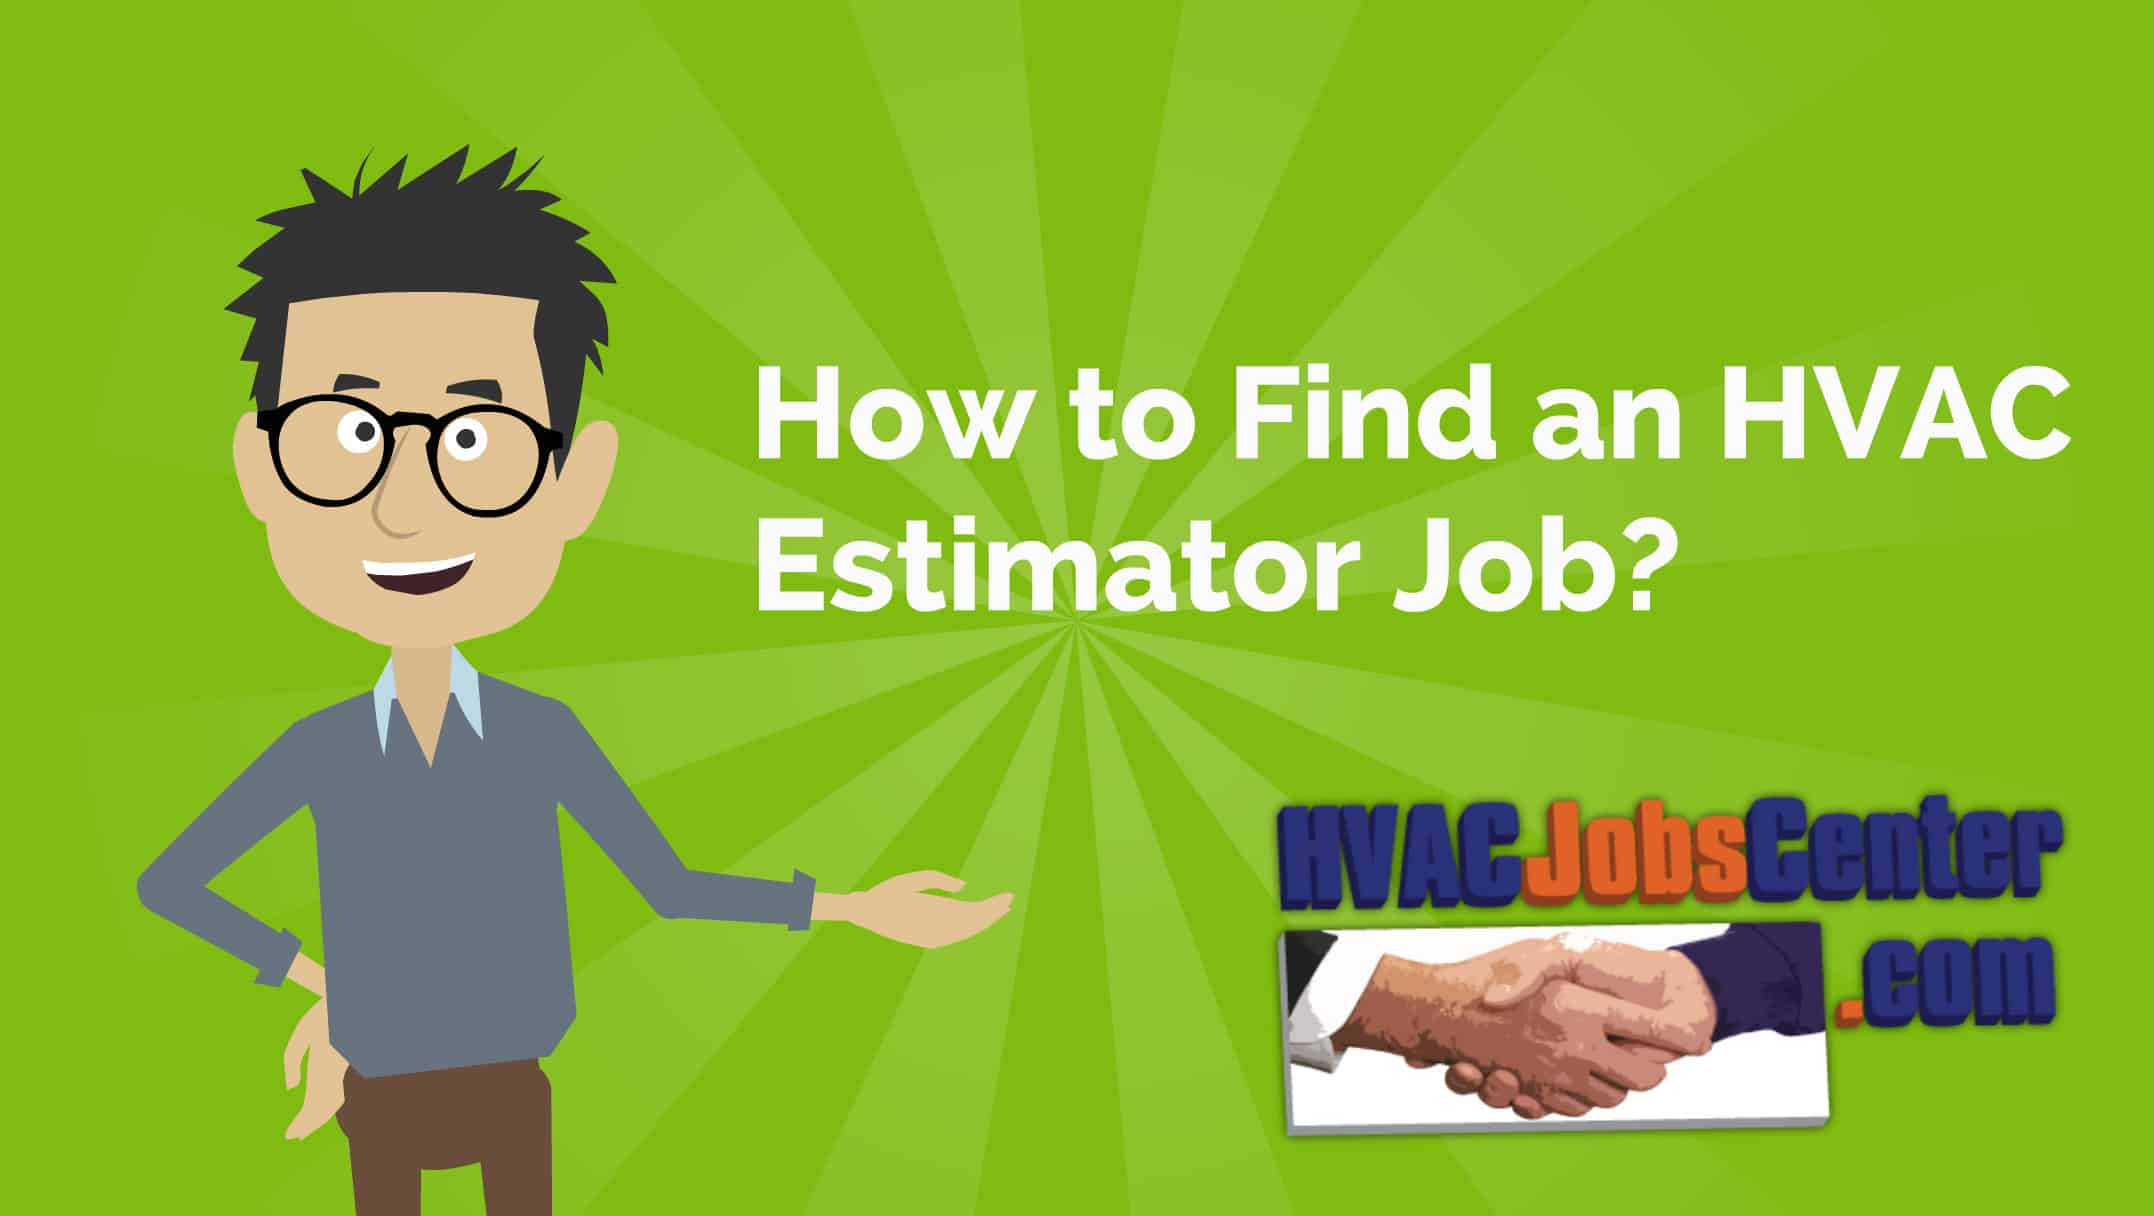 hvac estimators your new job is here hvac jobs center - Hvac Estimator